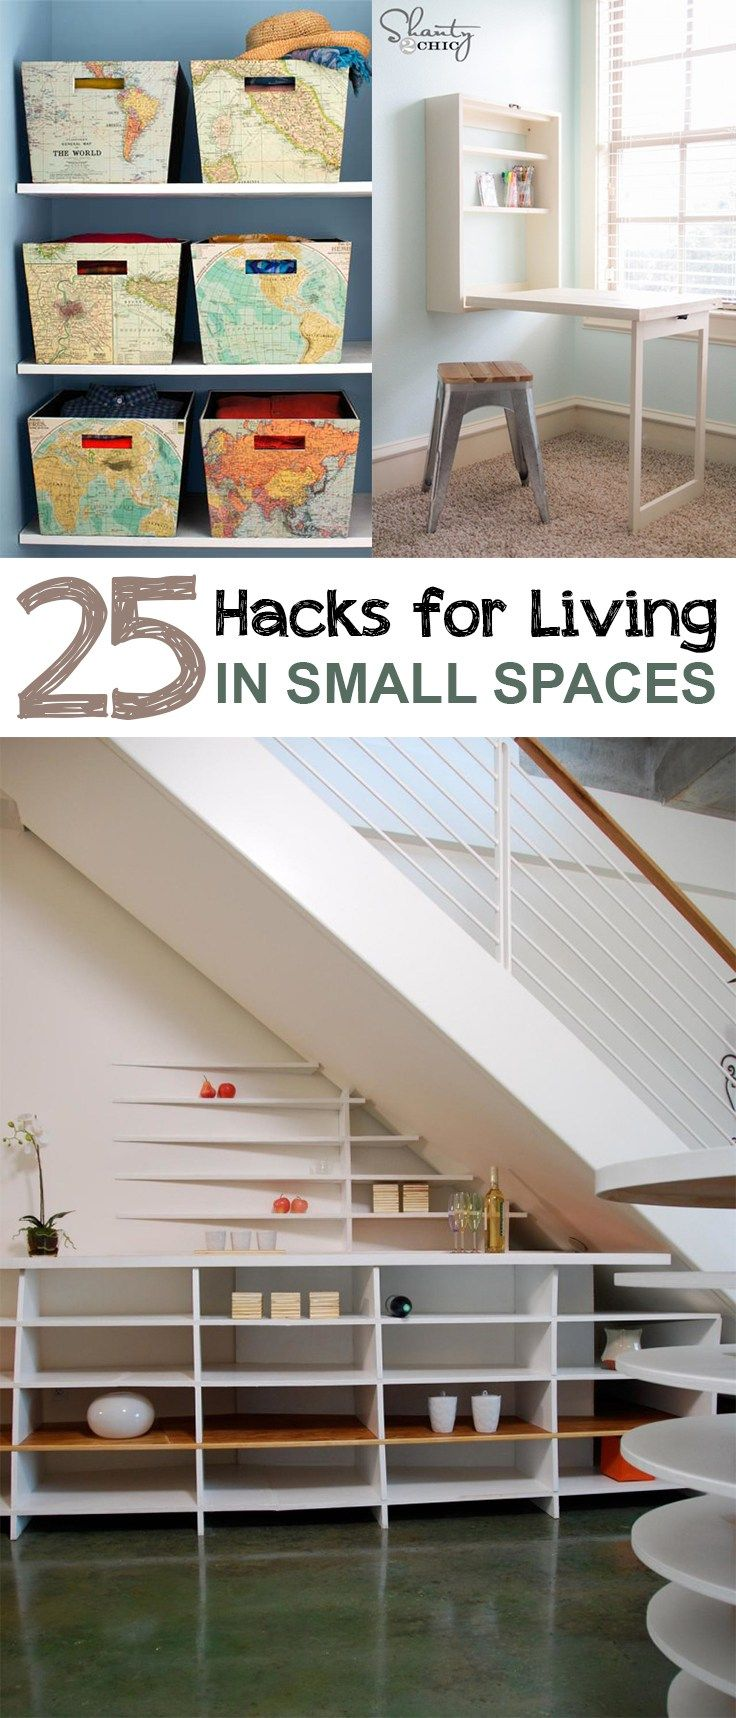 25 Hacks for Living in Small Spaces | Small spaces, Spaces and ...